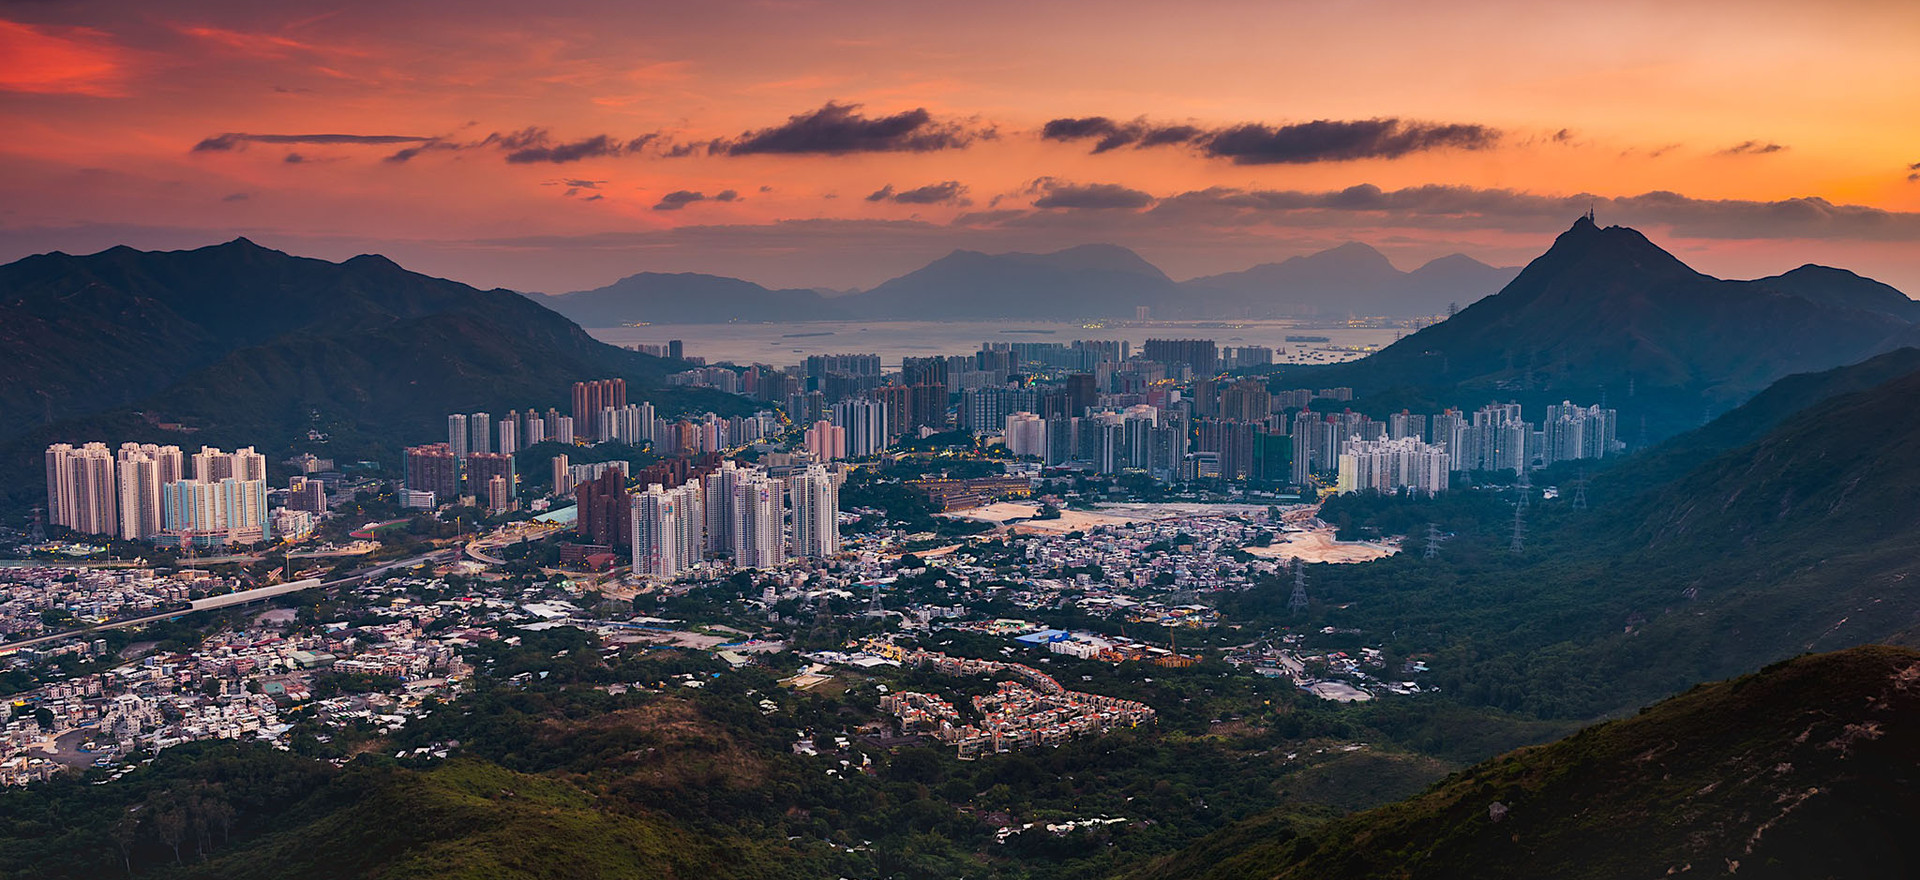 Sunset View of Tuen Mun (Mount Regency)